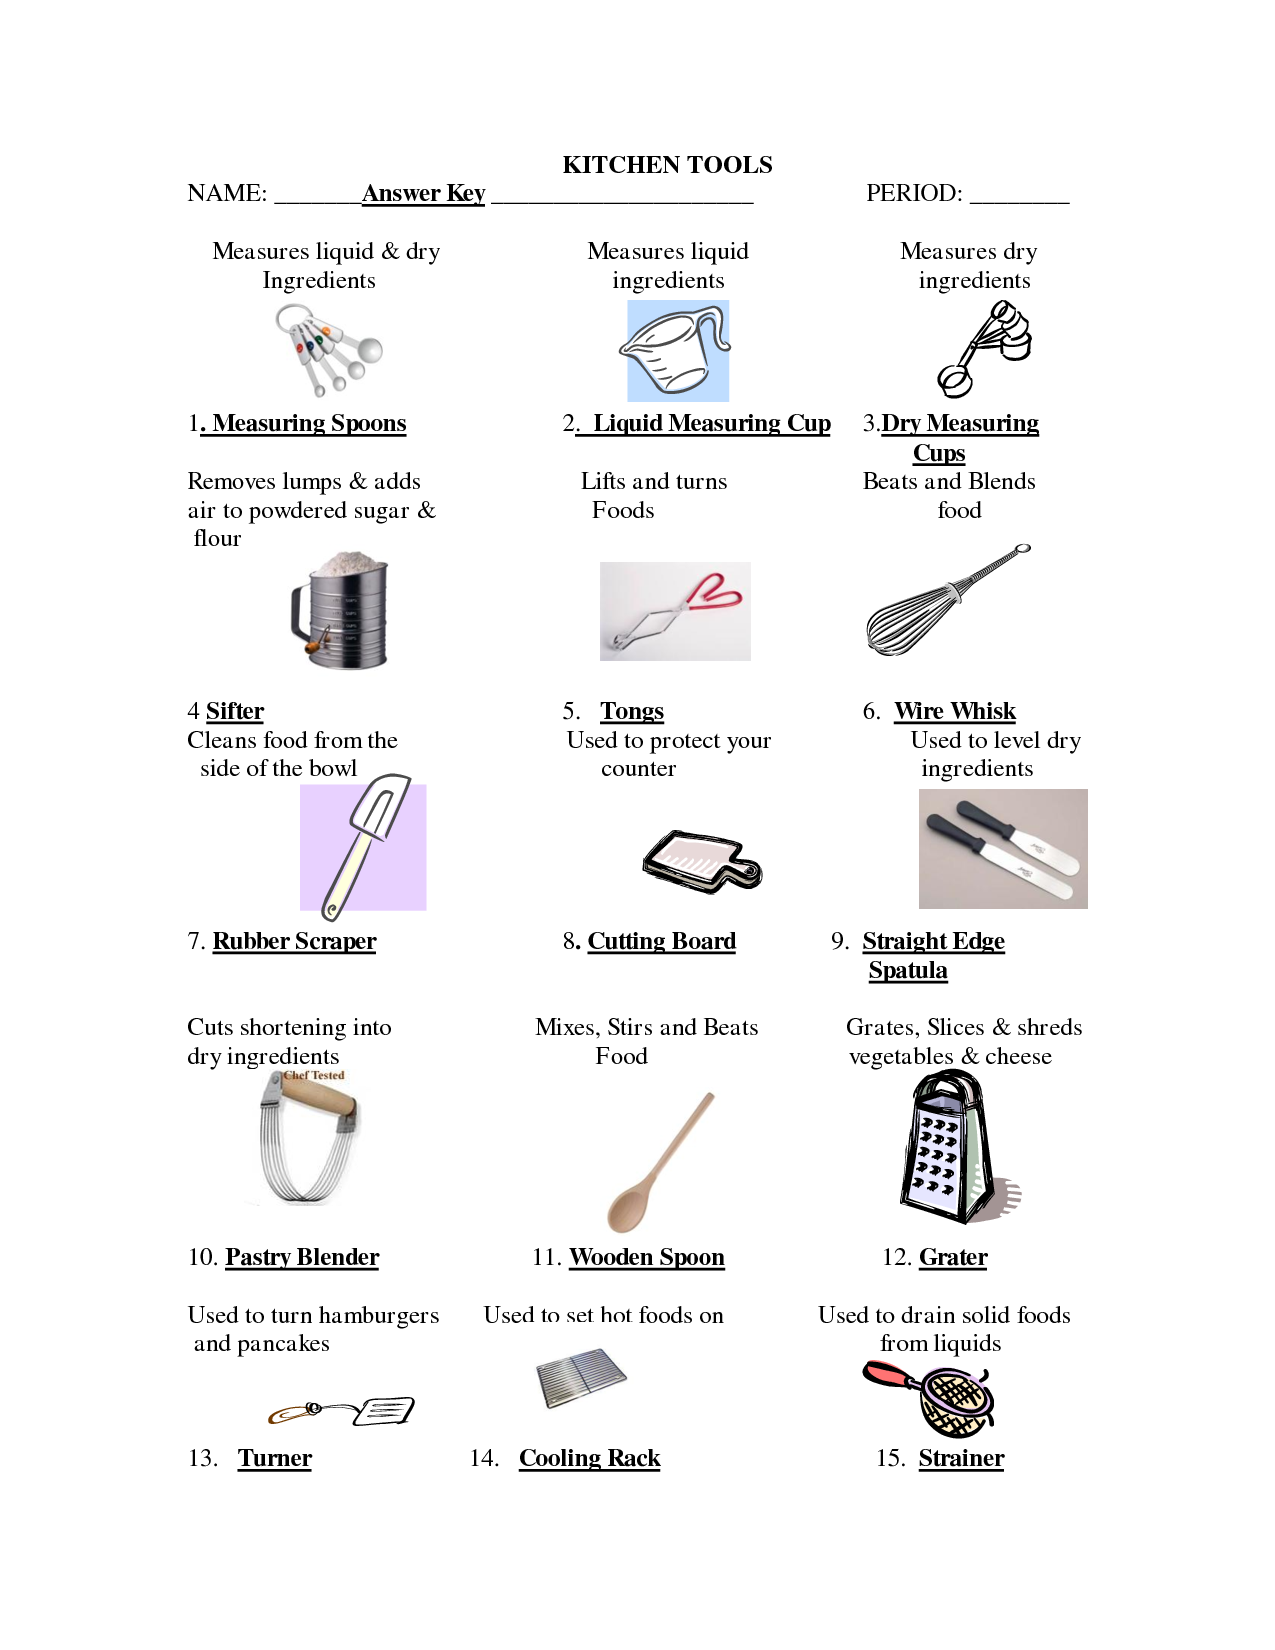 Kitchen Utensils Names And Uses Worksheet Wow Blog